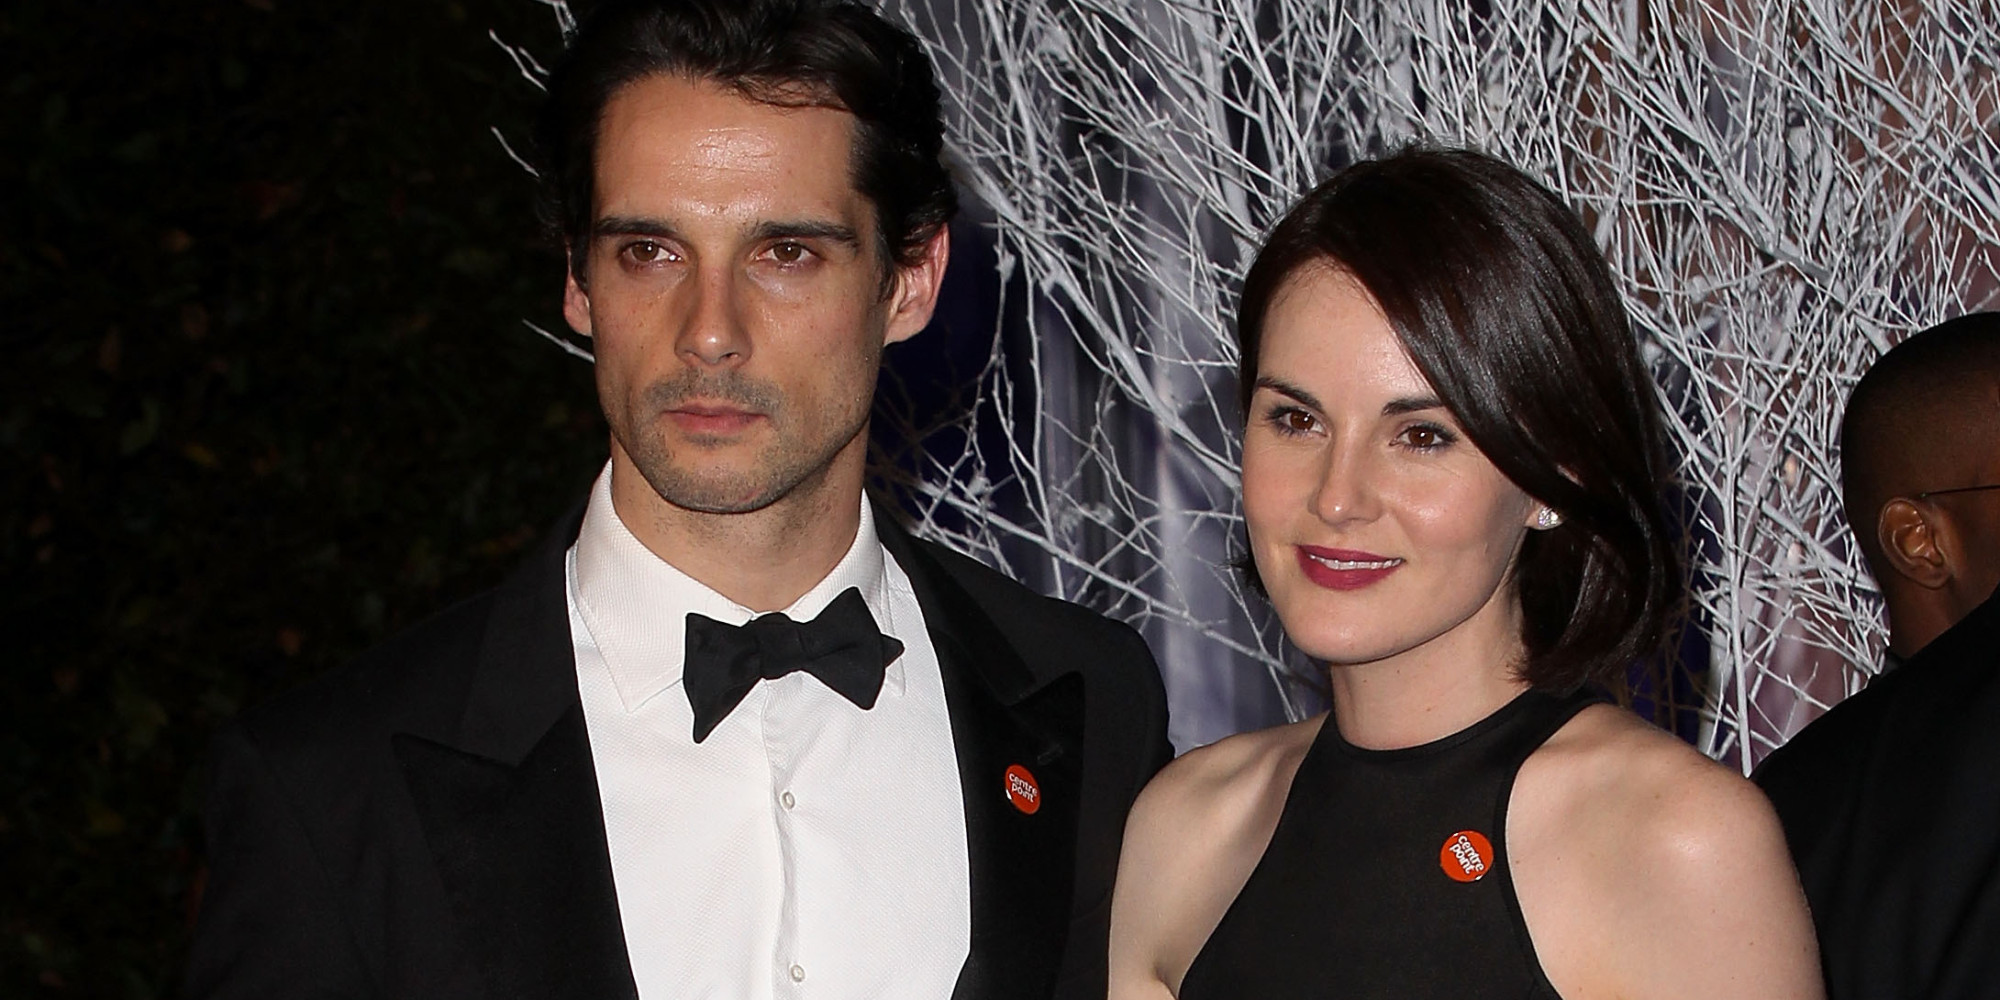 LONDON, ENGLAND - NOVEMBER 26: Michelle Dockery (R) and boyfriend John Dineen attend the Winter Whites Gala in aid of Centrepoint at Kensington Palace on November 26, 2013 in London, England. (Photo by Danny Martindale/WireImage)